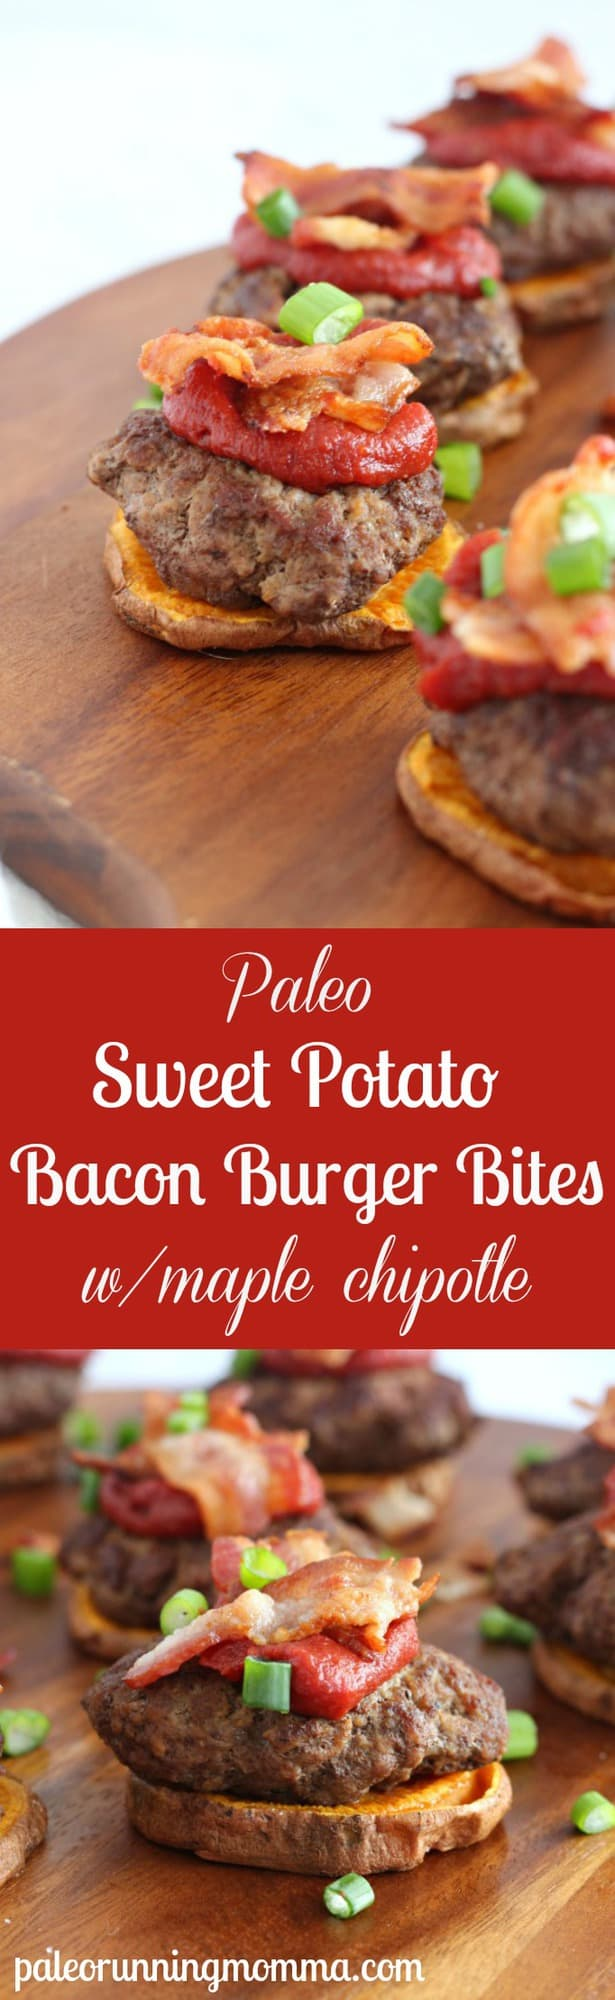 Paleo Sweet Potato Bacon Burger Bites with Maple Chipotle Ketchup - #grainfree #glutenfree, #paleo #lowfodmap #dairyfree